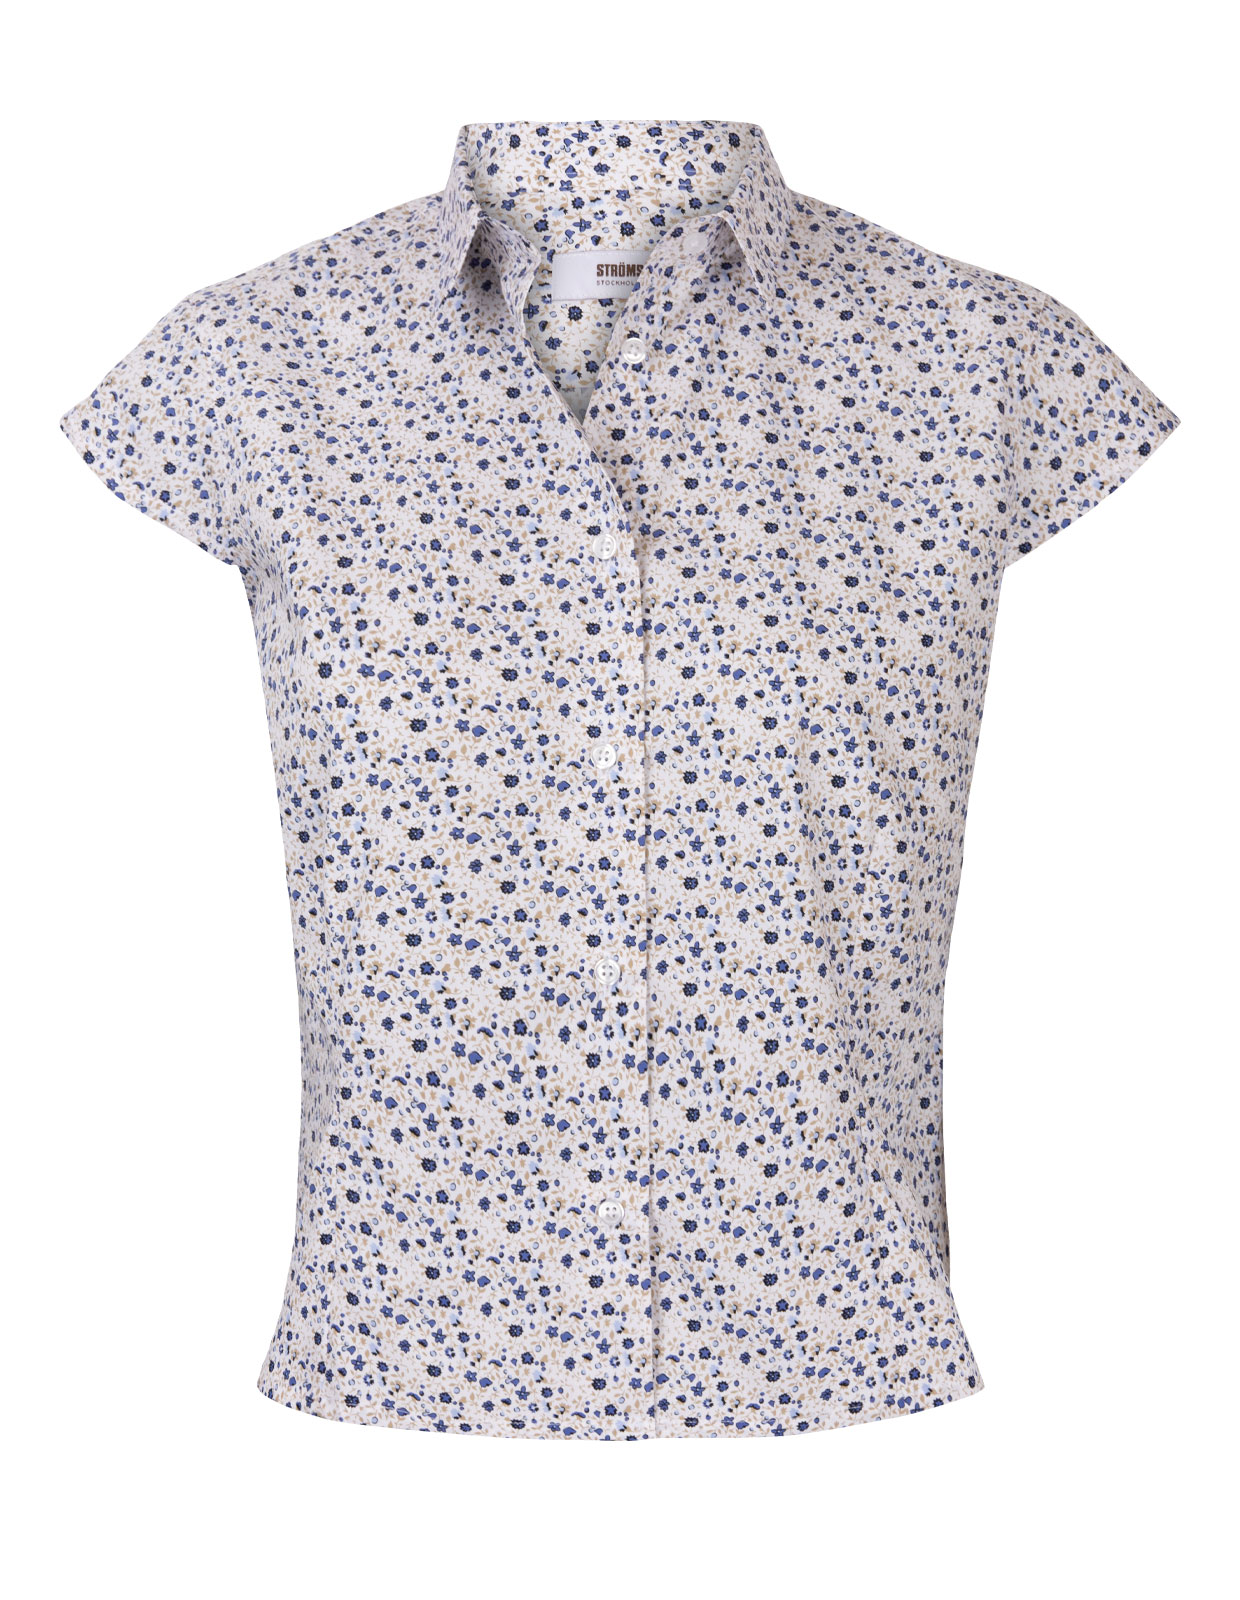 Cotton Shirt Cap Sleeve Flower Print